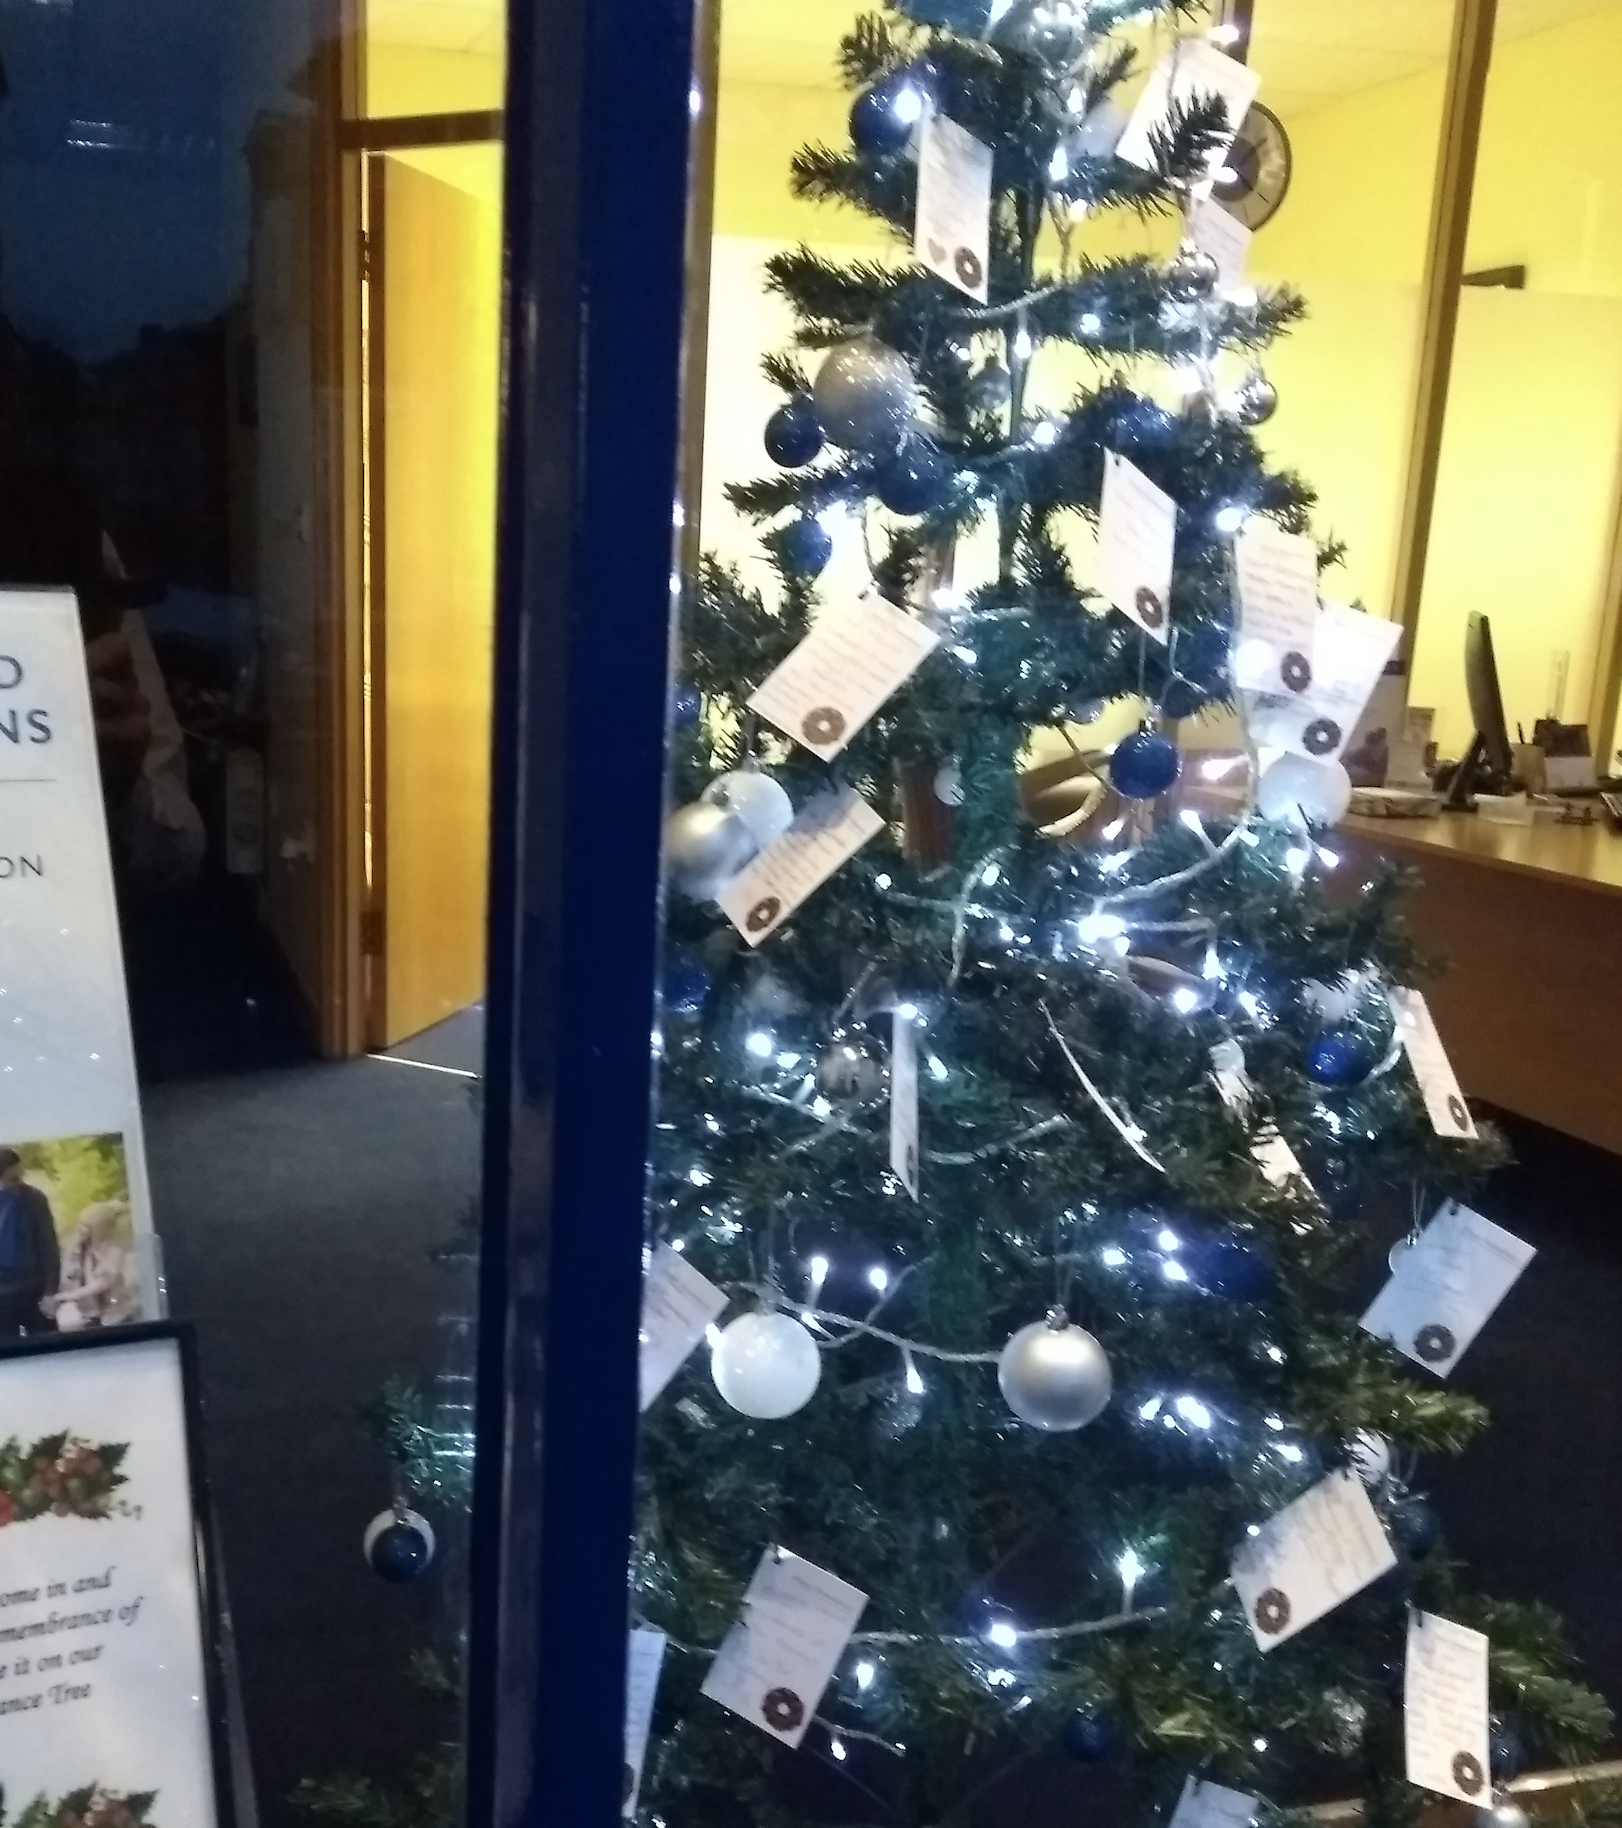 Molesey's Tree of Remembrance